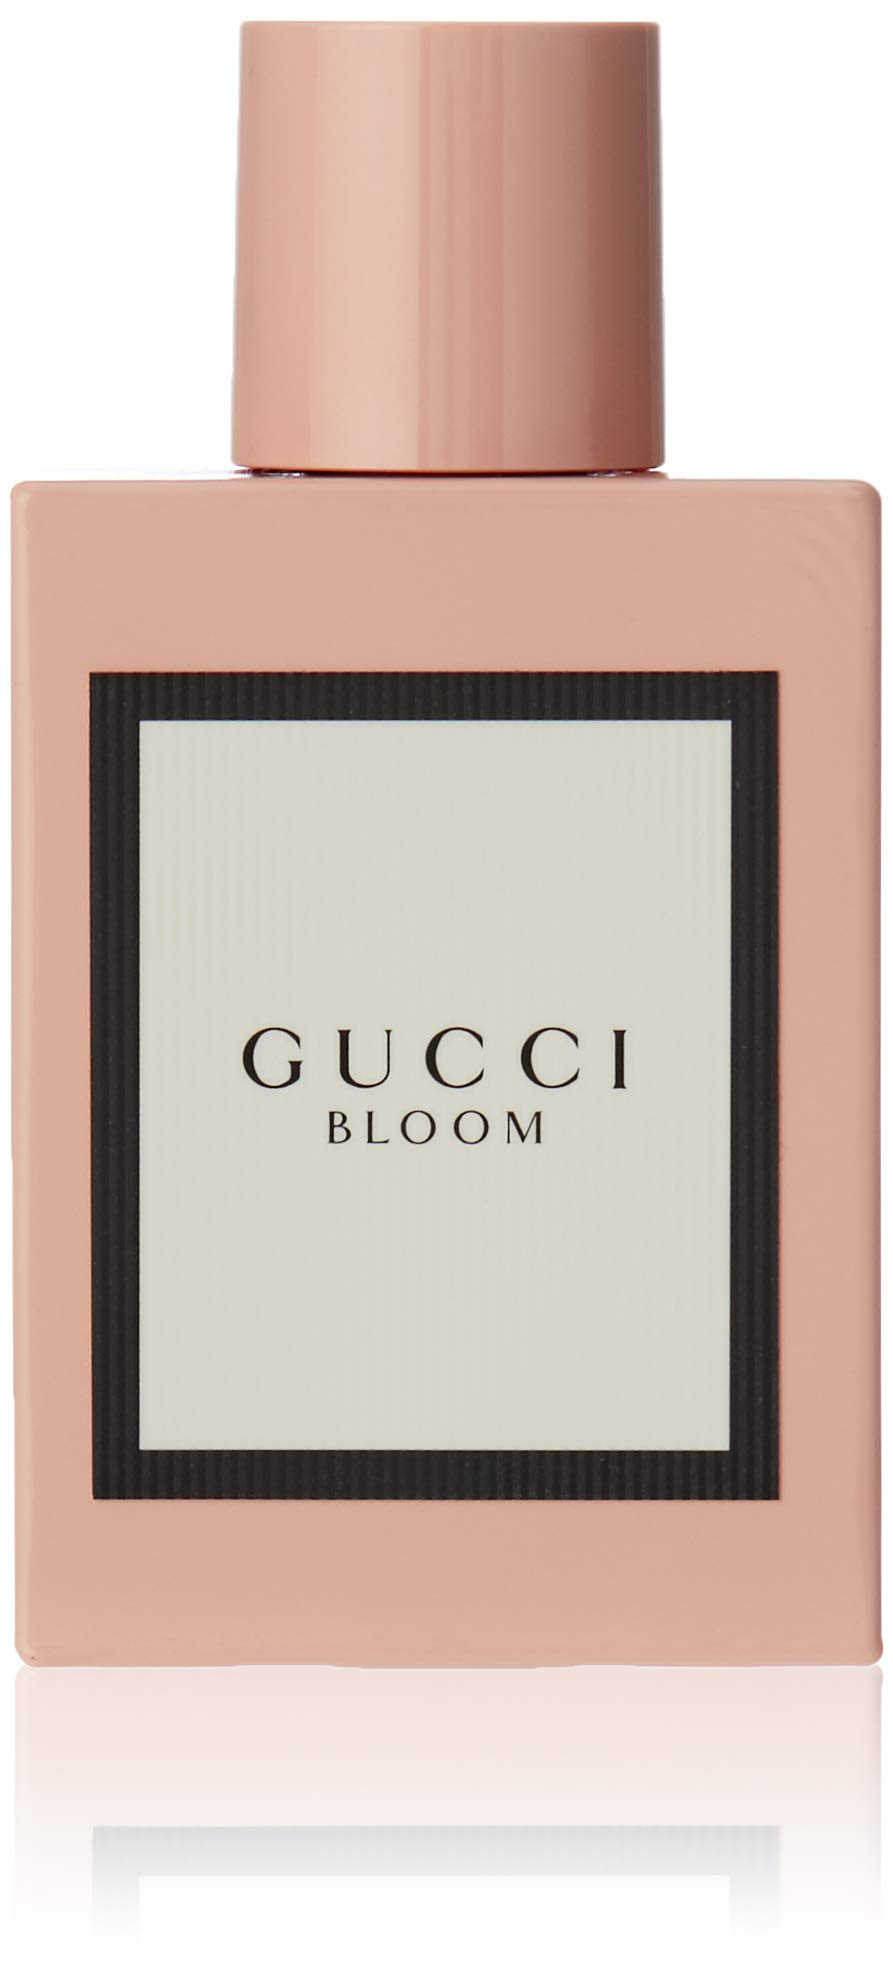 Gucci Bloom By For Women Eau De Parfum Spray 1.6 oz by Gucci